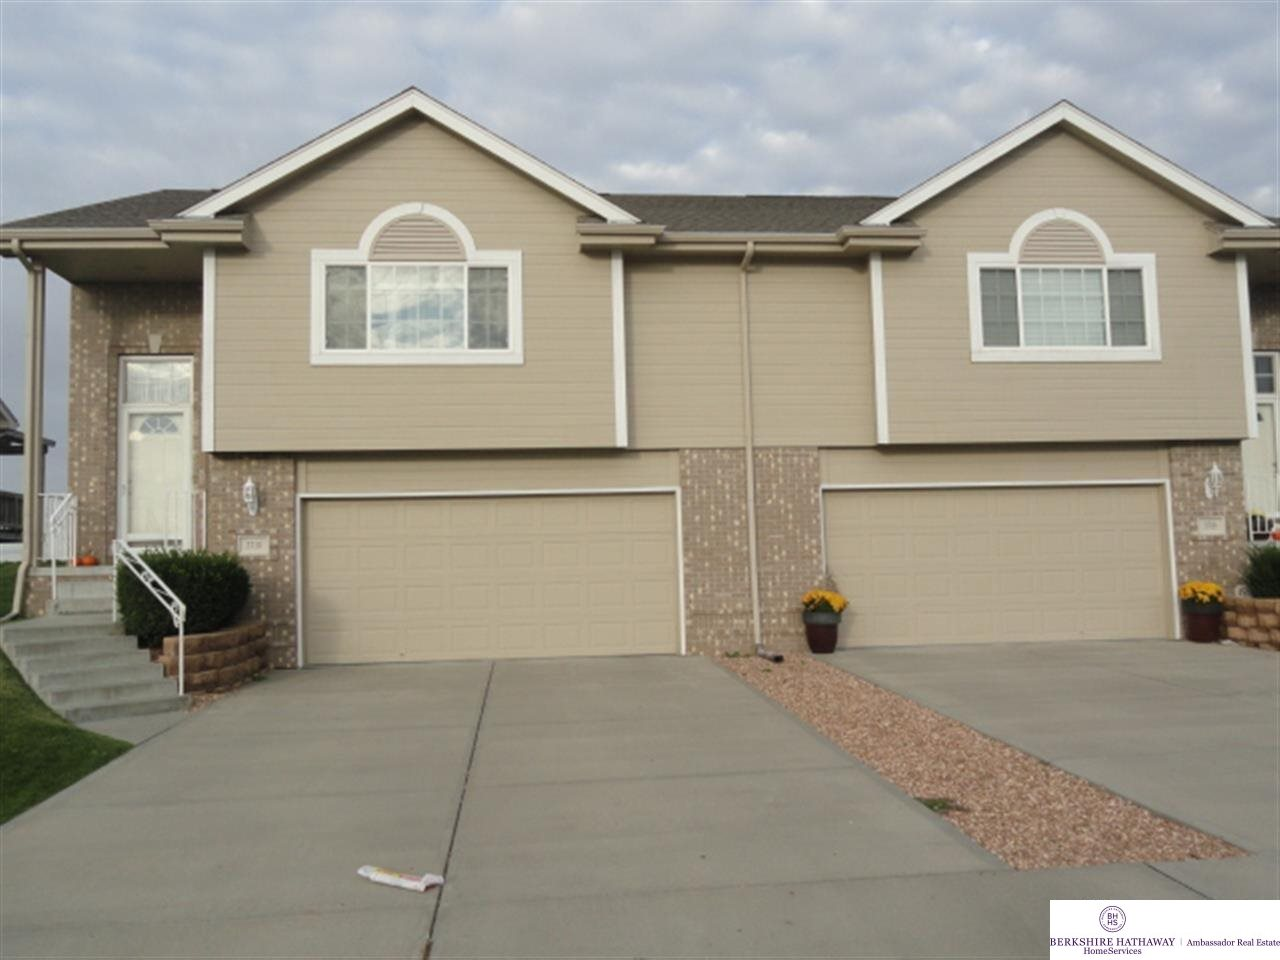 Rental Homes for Rent, ListingId:27058692, location: 3710 S 202nd Ave. Omaha 68130